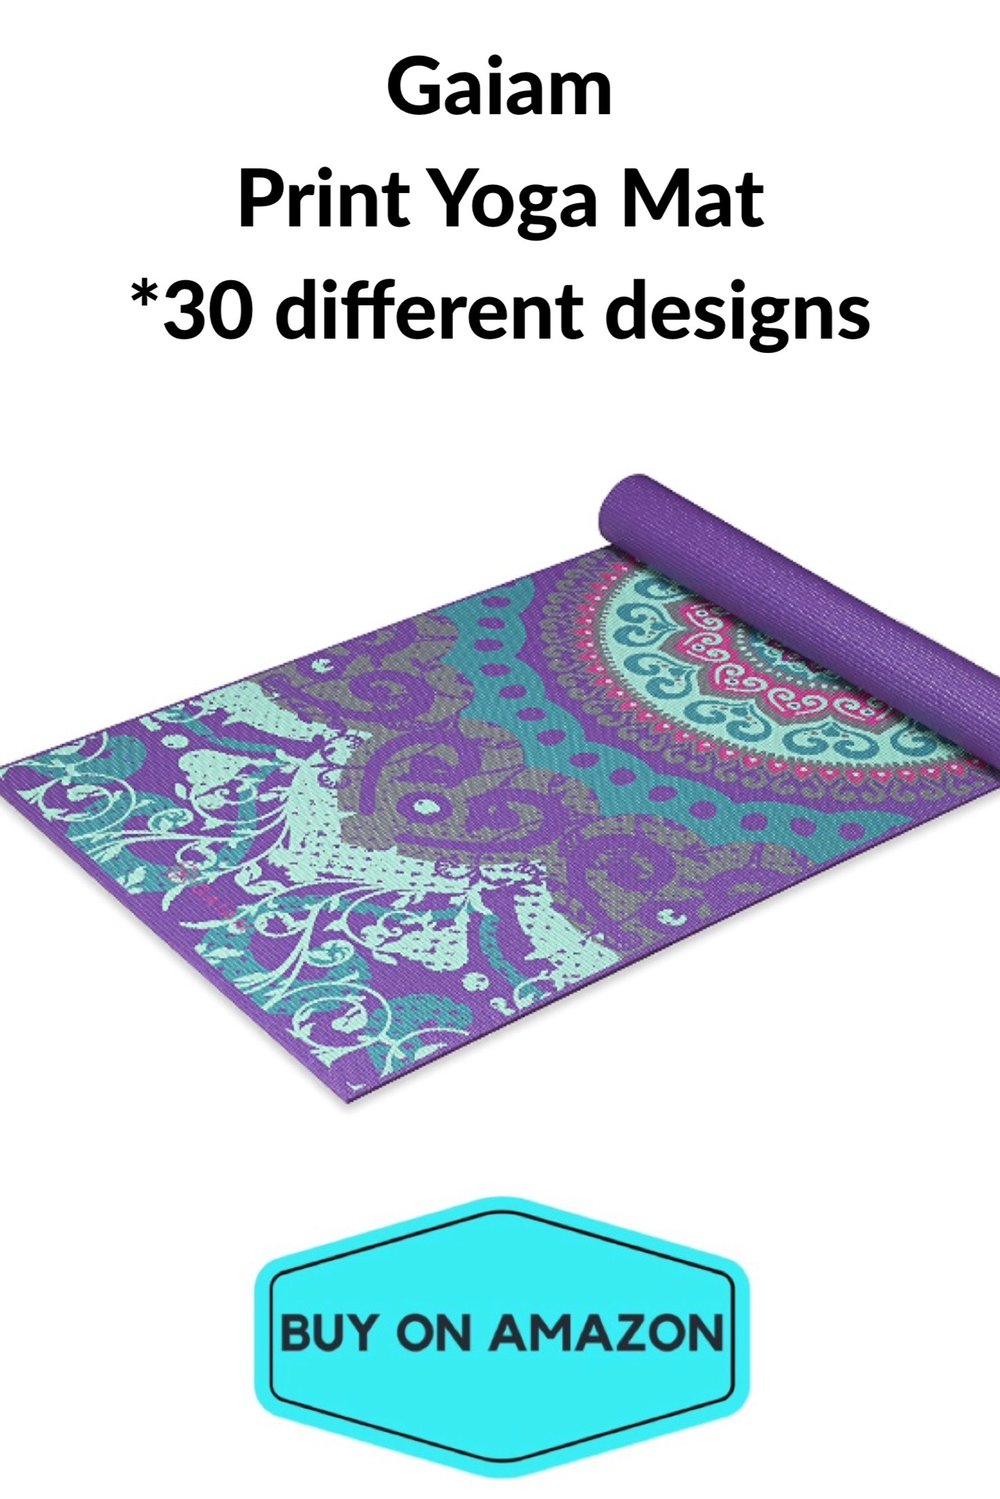 Gaiam Print Yoga Mats